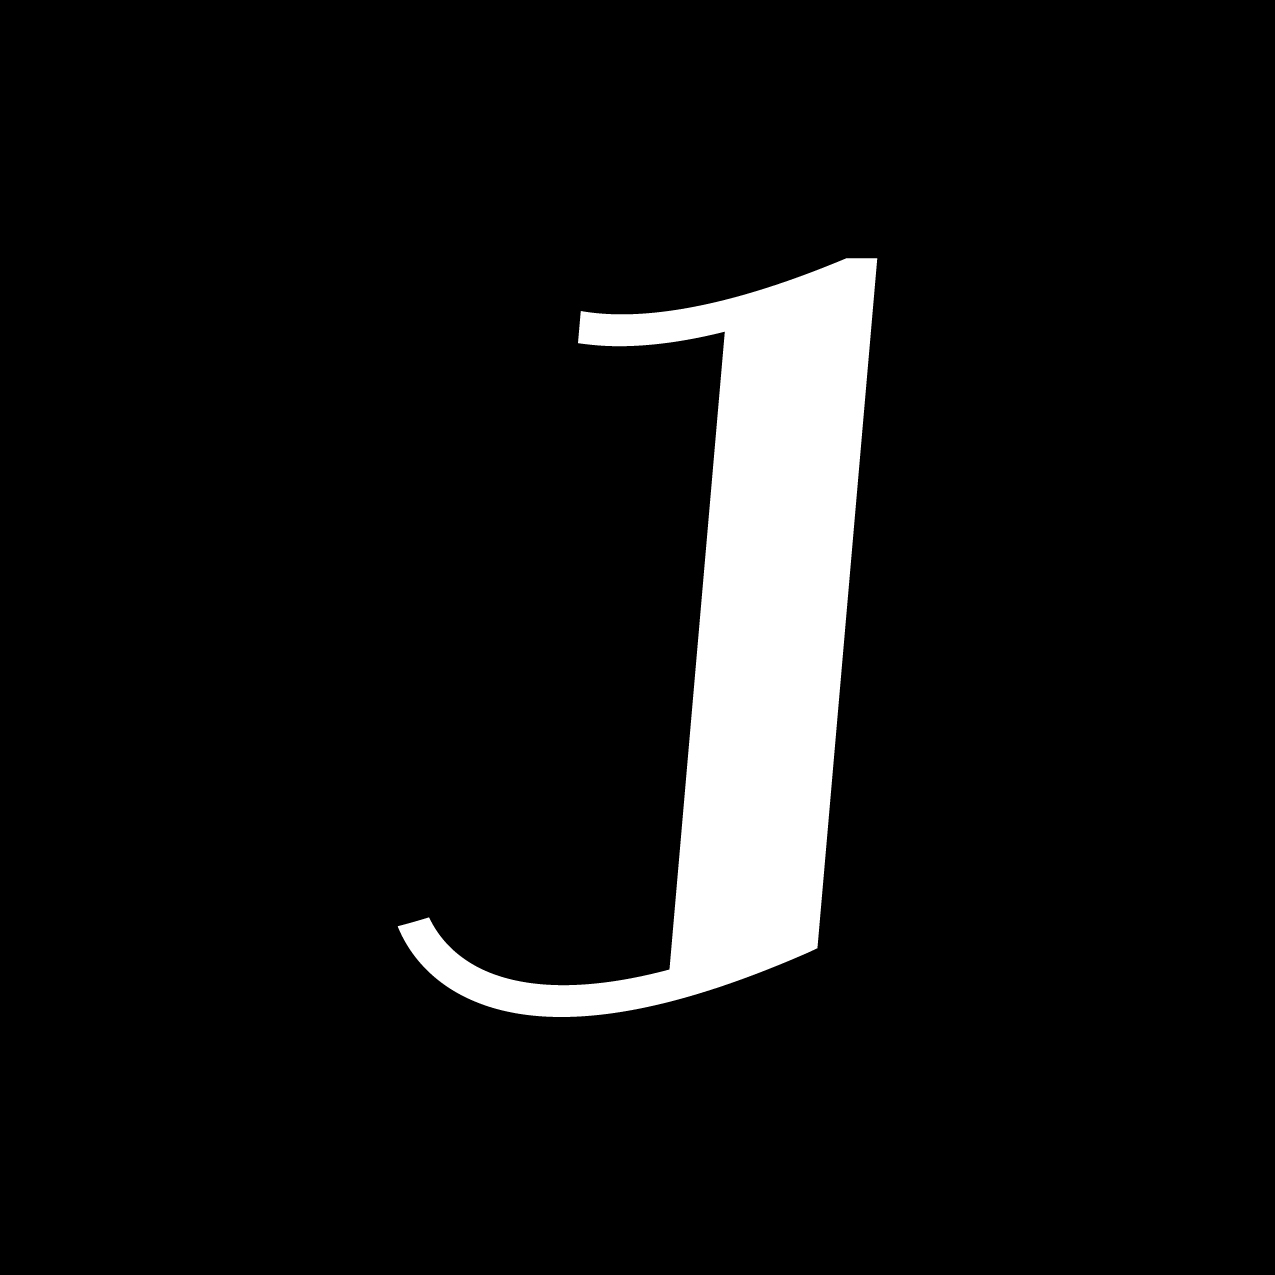 Letter J5 Design by Furia